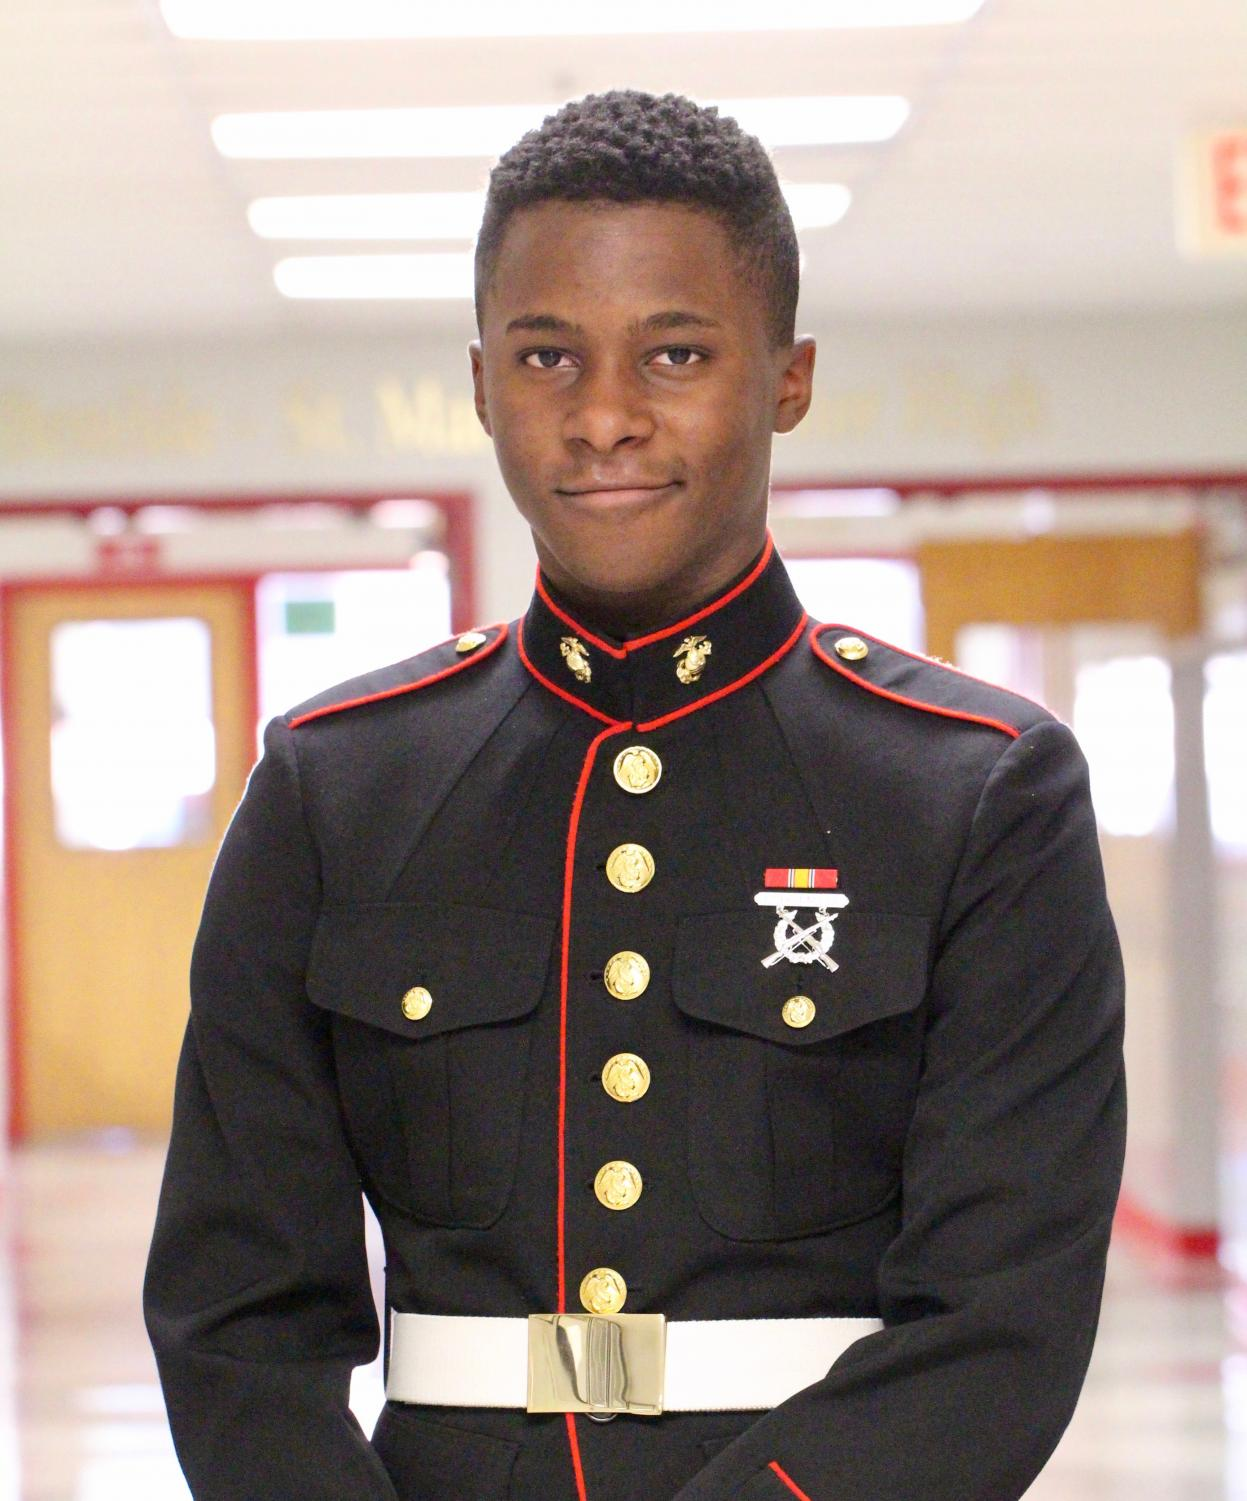 Kameron Herndon decided to push himself by joining the Marine Corps.